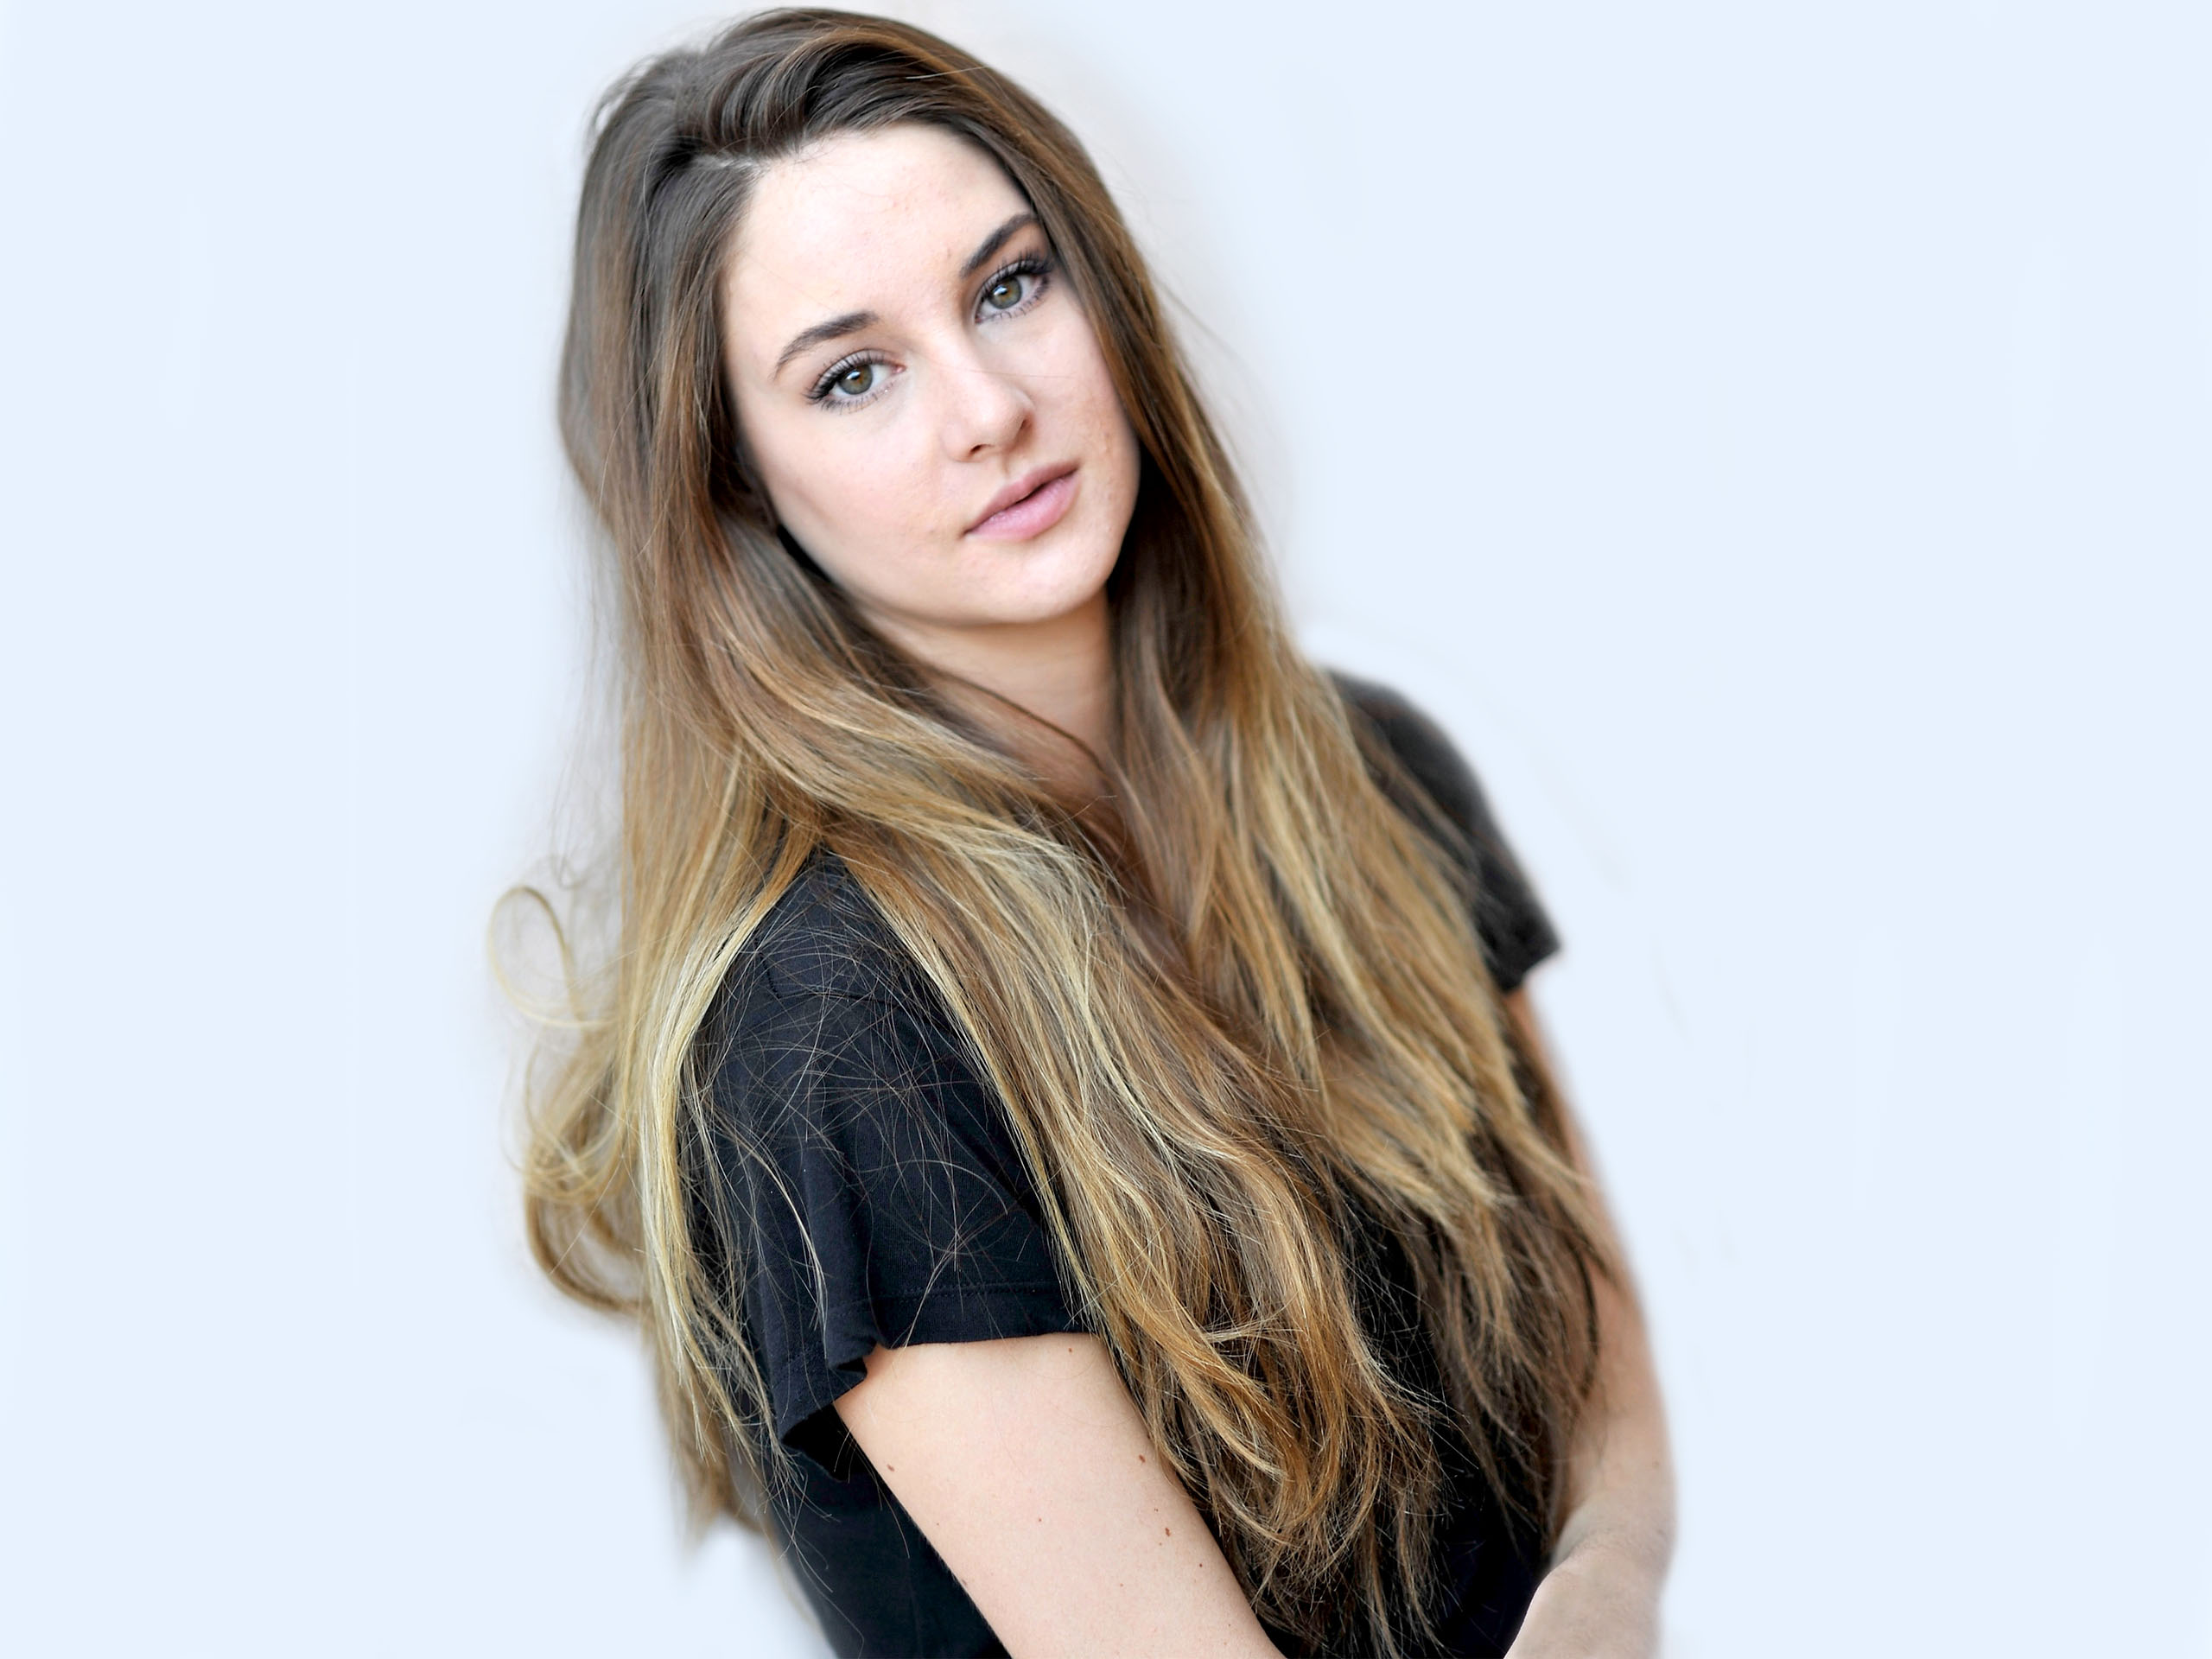 1360x768 shailene woodley actress laptop hd hd 4k wallpapers images shailene woodley actress laptop hd thecheapjerseys Choice Image